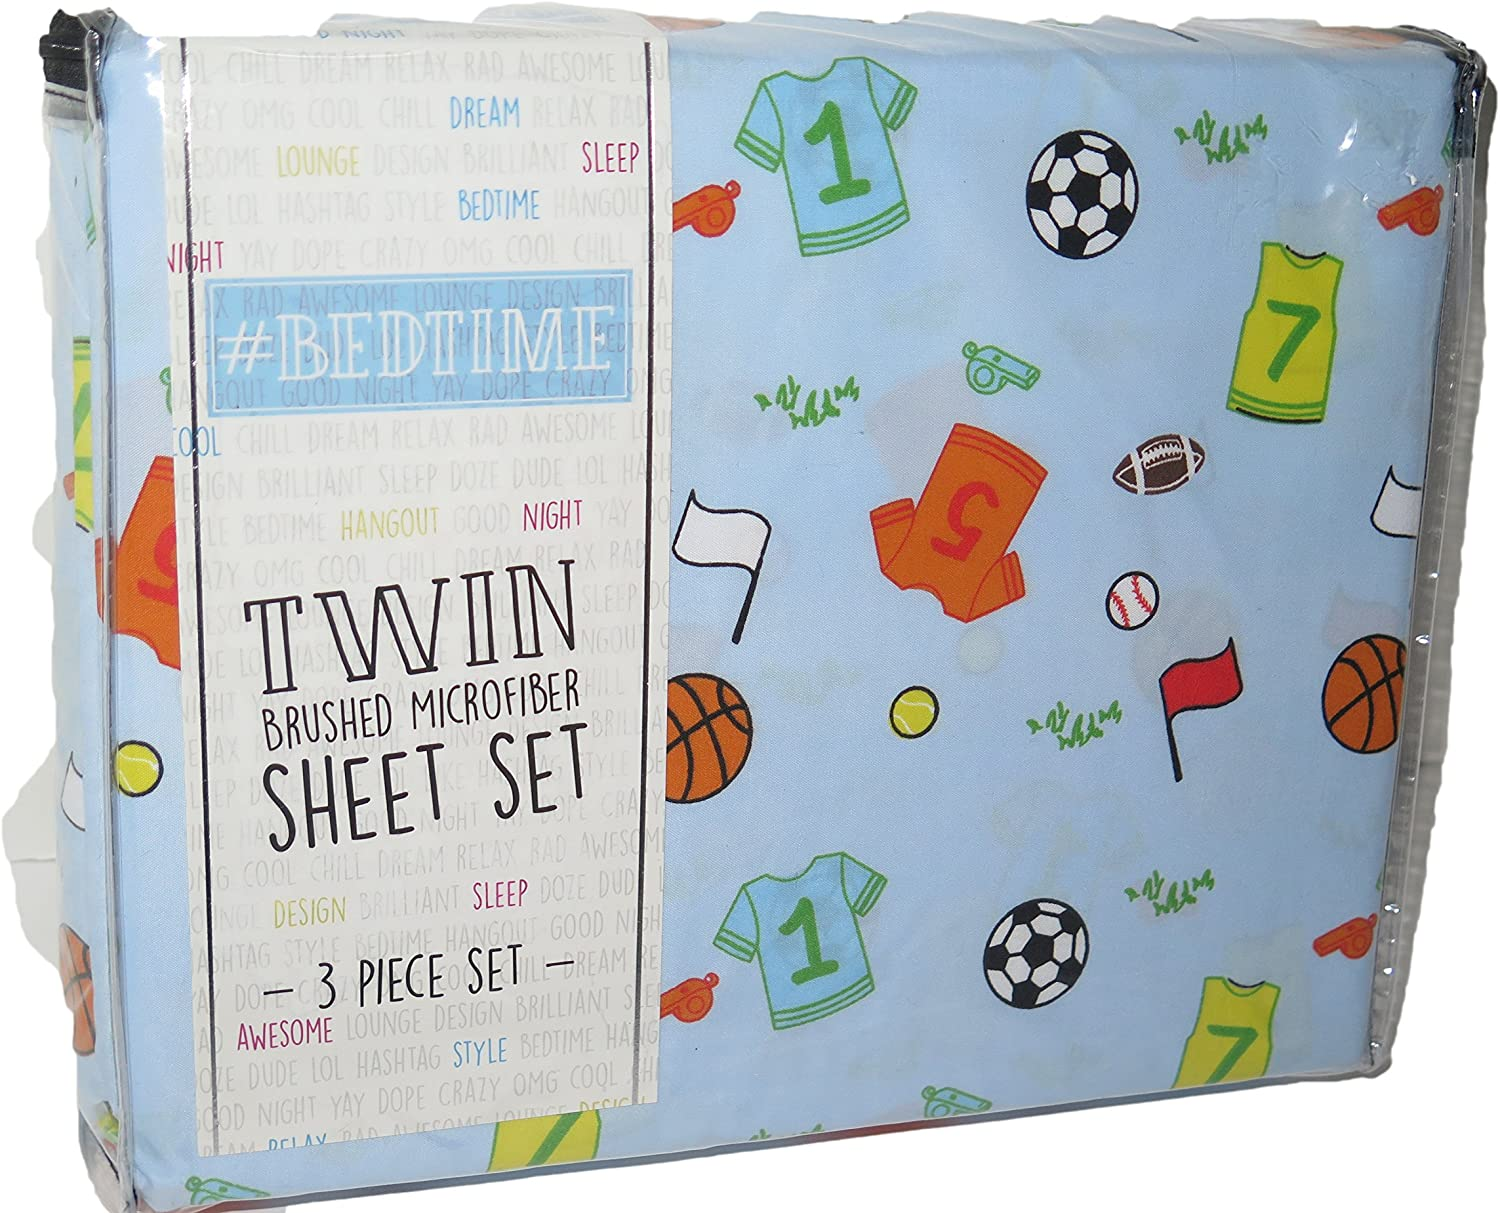 #Bedtime Sport Ball Jersey Shirt Print Blue Boy TWIN 3 Pc Sheet Set 919D7AtTCML